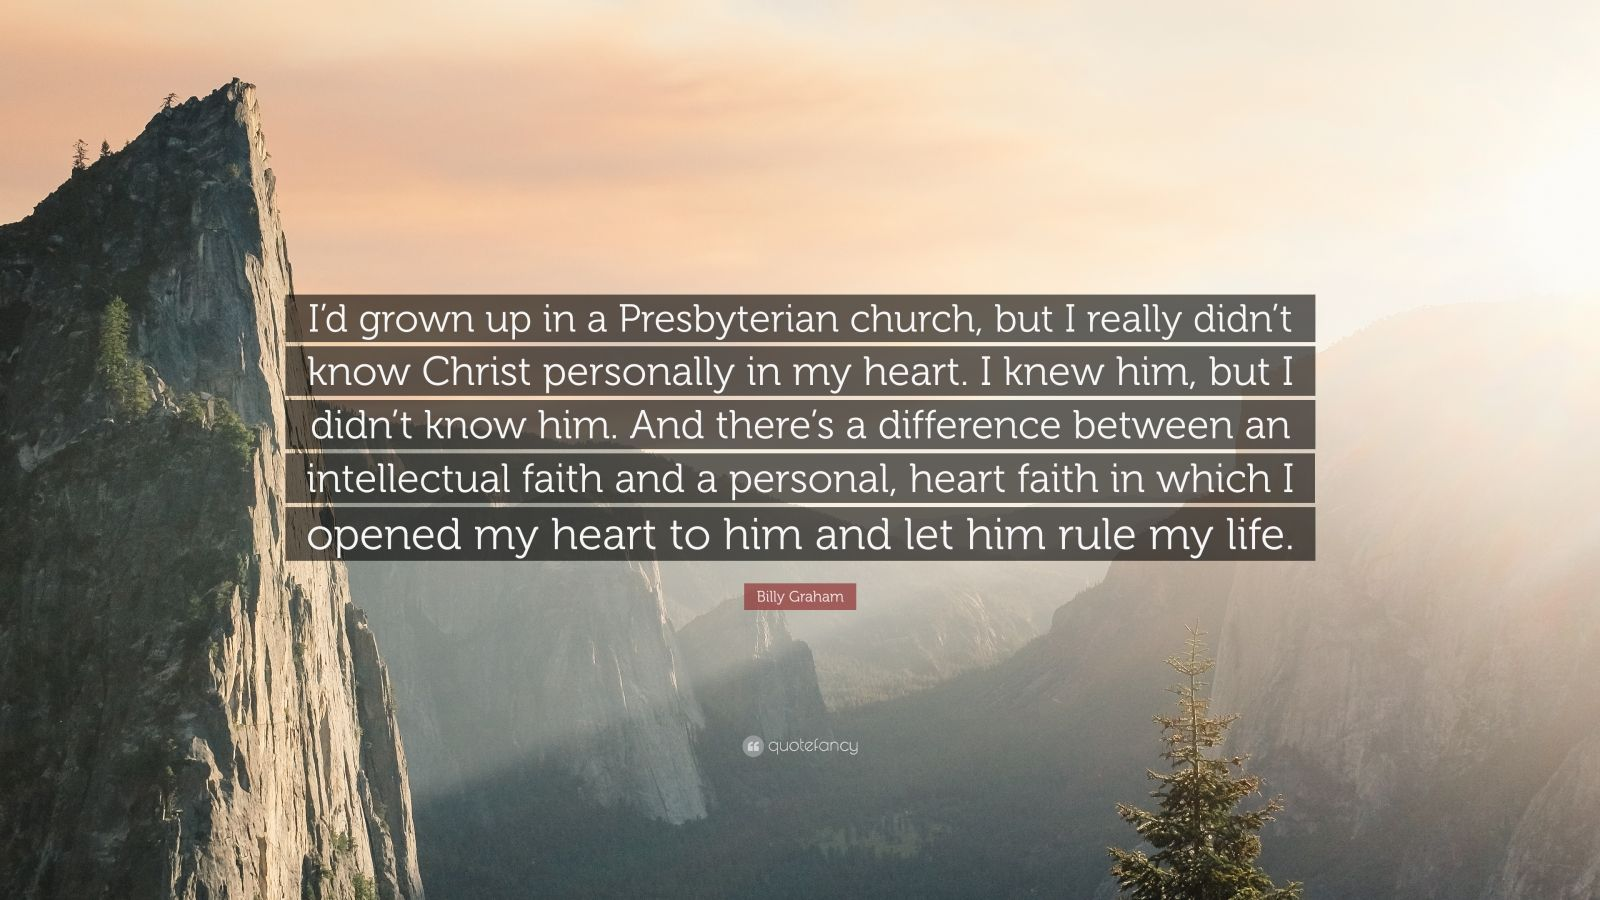 "Billy Graham Quote: ""I'd grown up in a Presbyterian church, but I really didn't know Christ personally in my heart. I knew him, but I didn't know him. And there's a difference between an intellectual faith and a personal, heart faith in which I opened my heart to him and let him rule my life."""